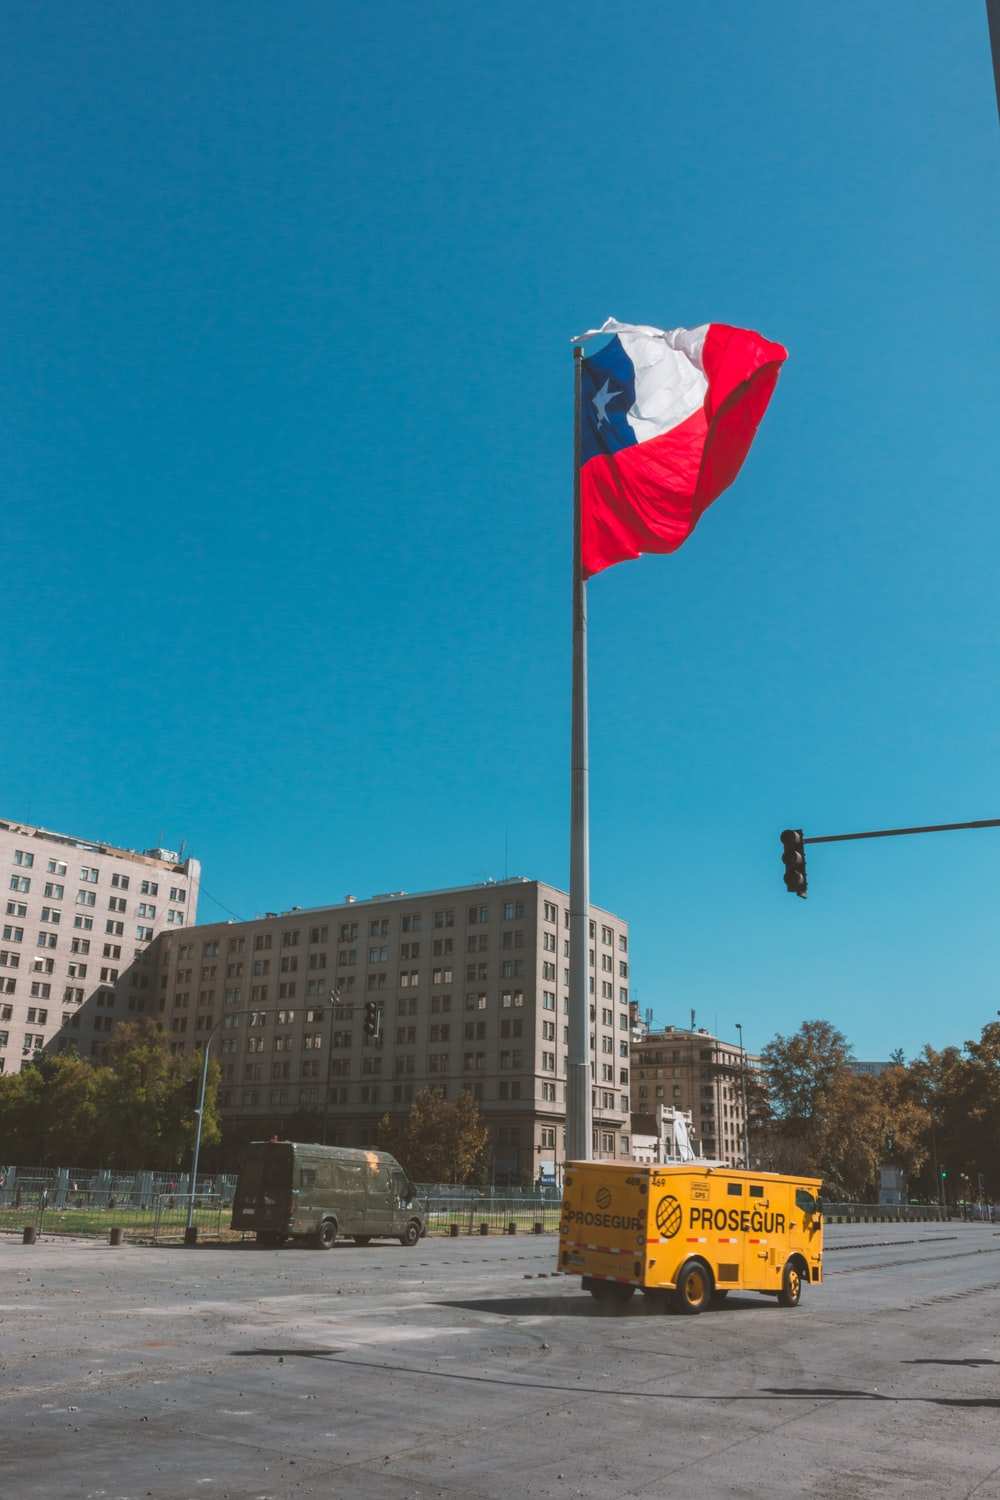 white red and blue flag on pole during daytime